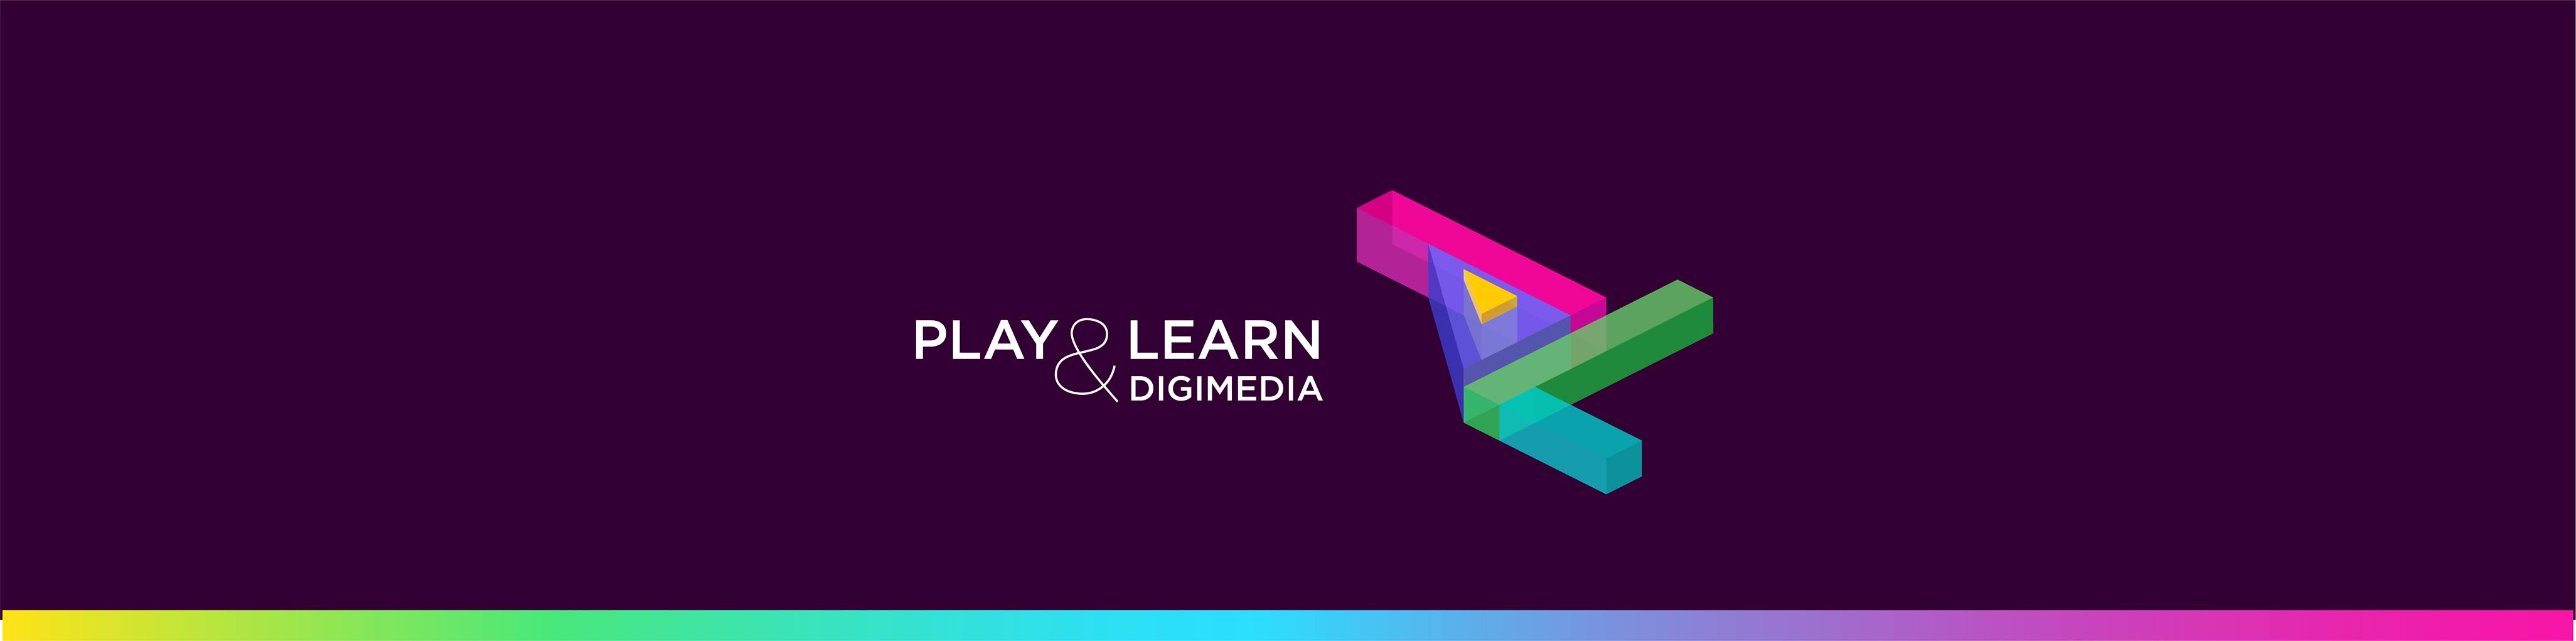 Play&Learn DigiMedia